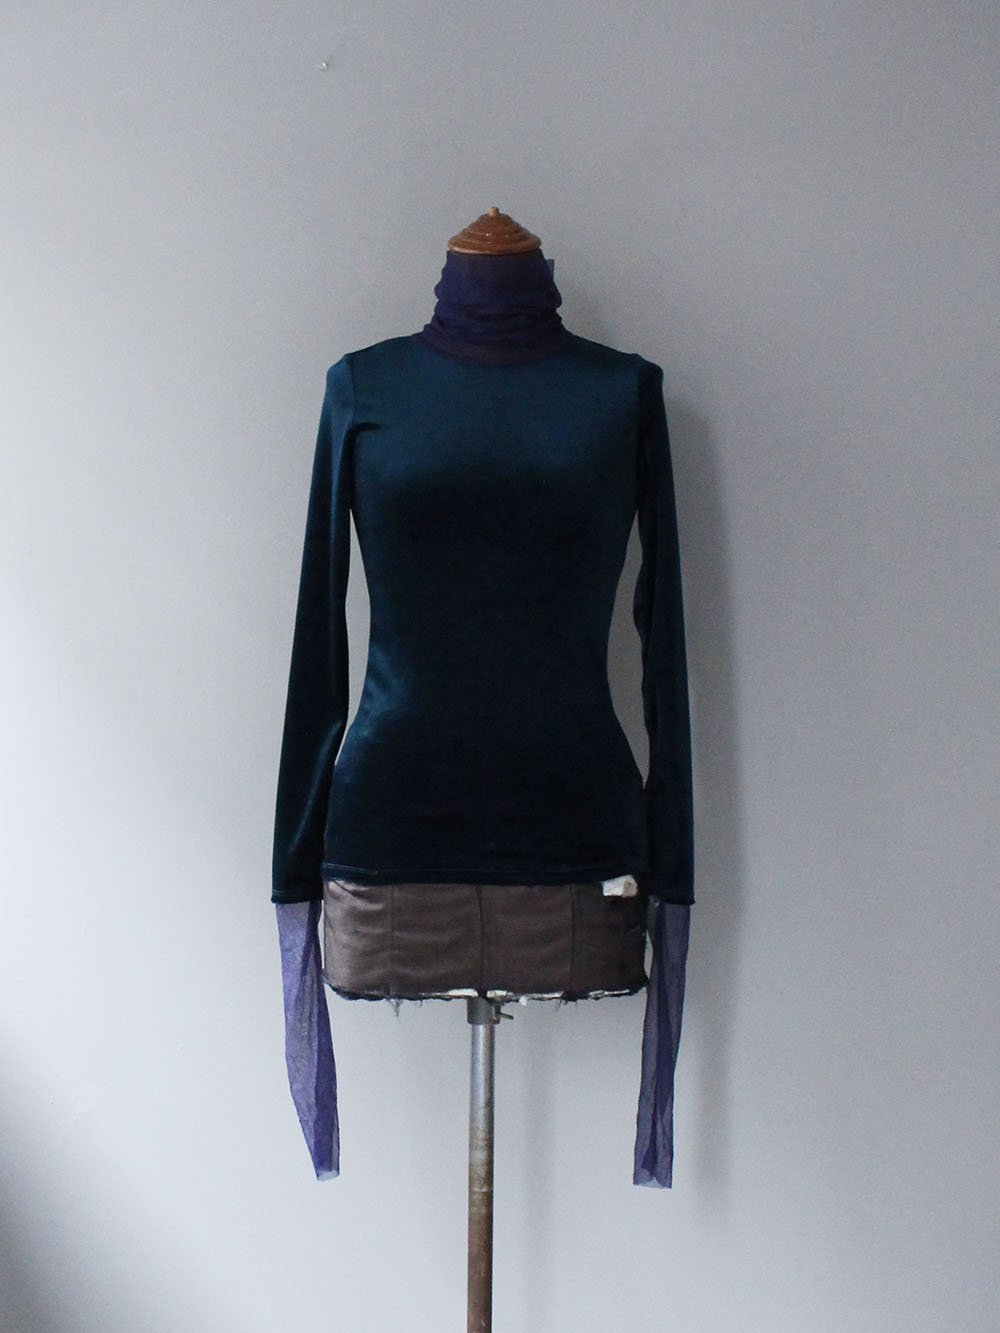 """<img class='new_mark_img1' src='https://img.shop-pro.jp/img/new/icons8.gif' style='border:none;display:inline;margin:0px;padding:0px;width:auto;' />FILL THE BILL"""" VELOR SHEER TURTLE NECK (NAVY x PURPLE)"""